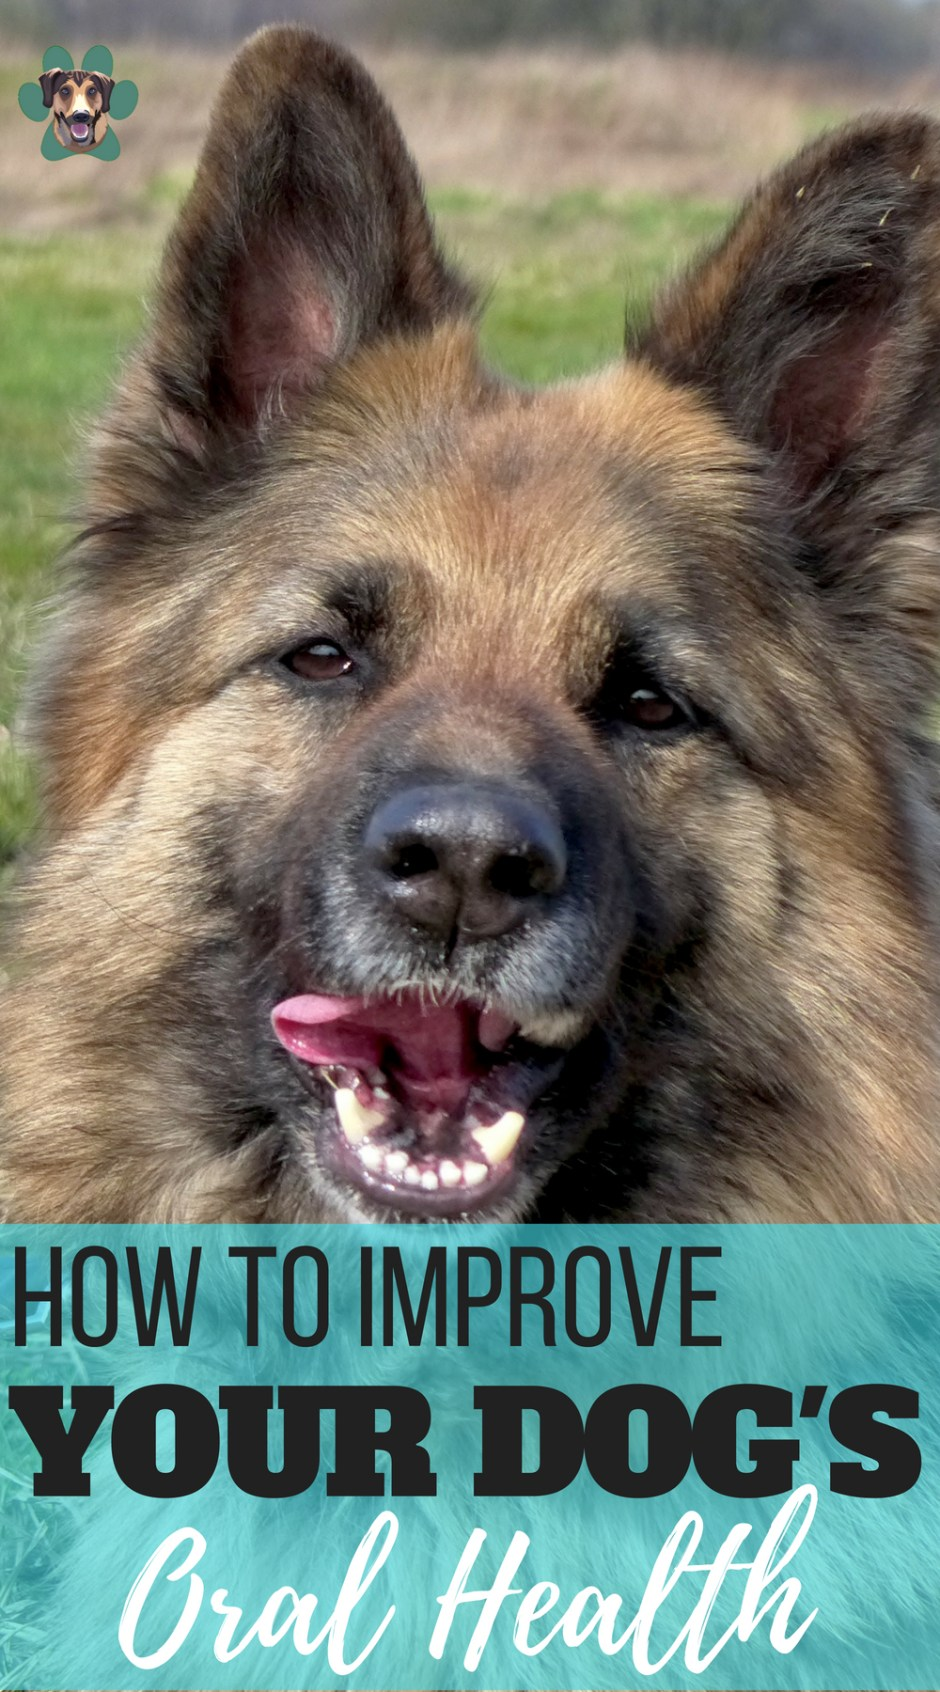 How to Improve Your Dog's Oral Health